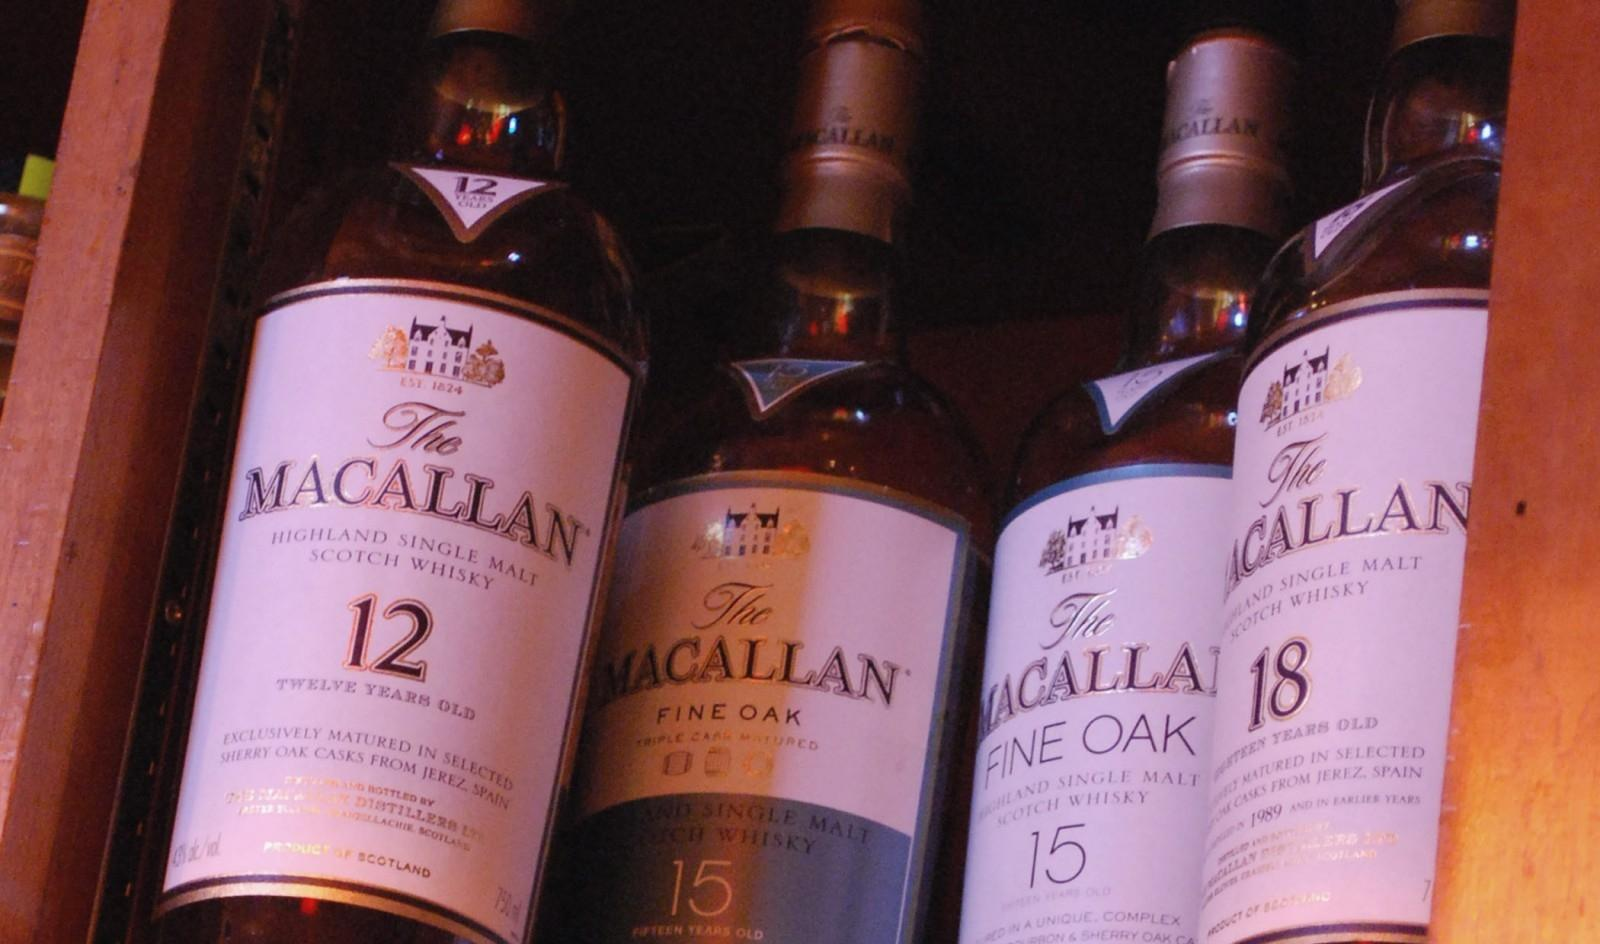 Macallan is noted for holding on to the tradition of using Golden Promise barley up to the year 1994 - Photo: FLICKR/ Chuckyeager